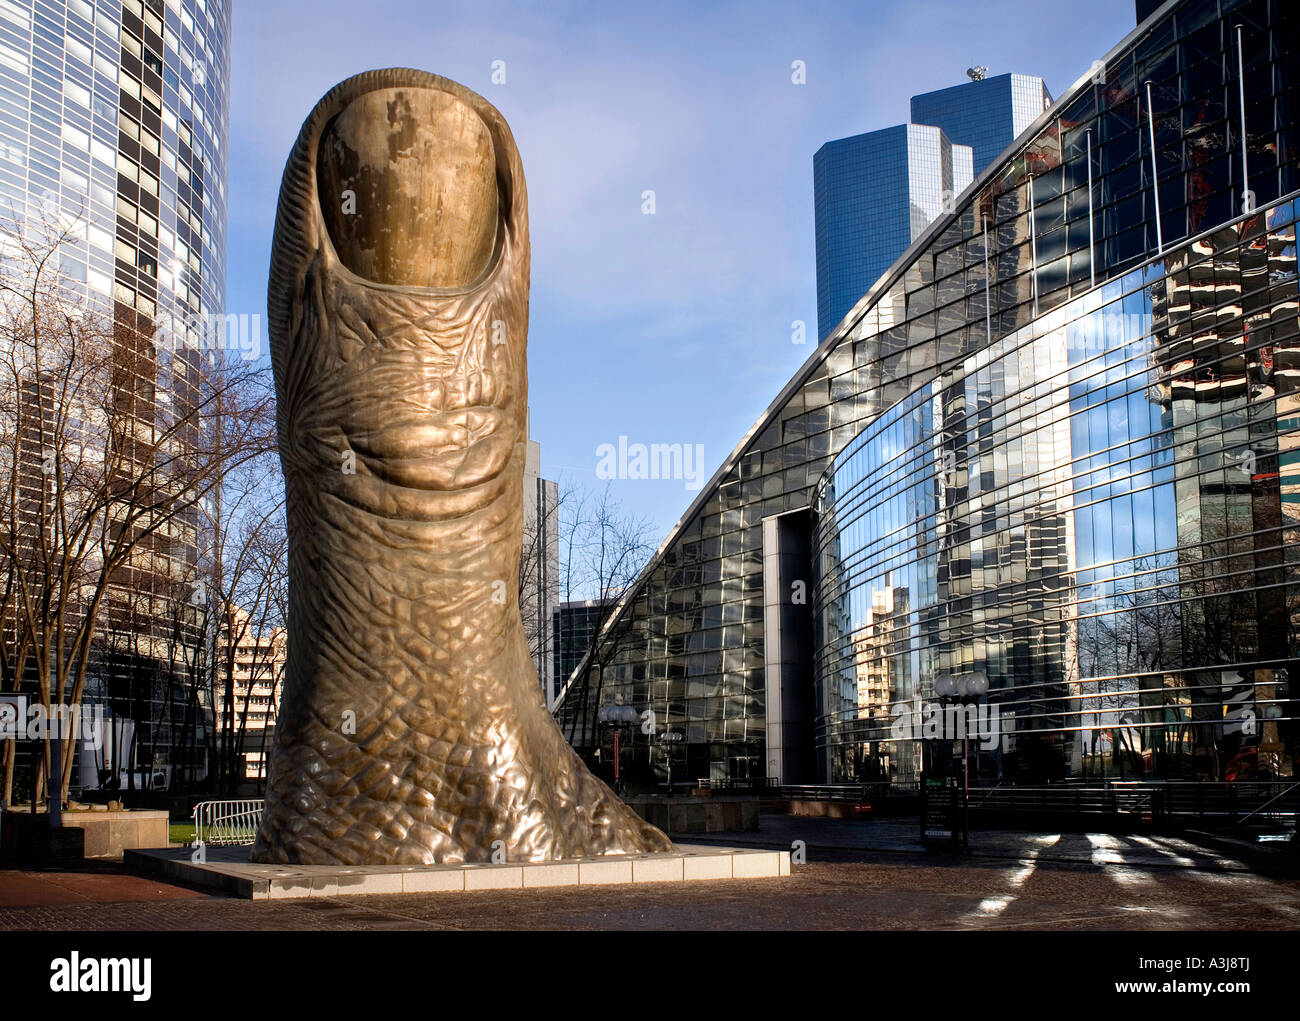 Pouce géant sculpture à la Defense, Paris, France Photo Stock